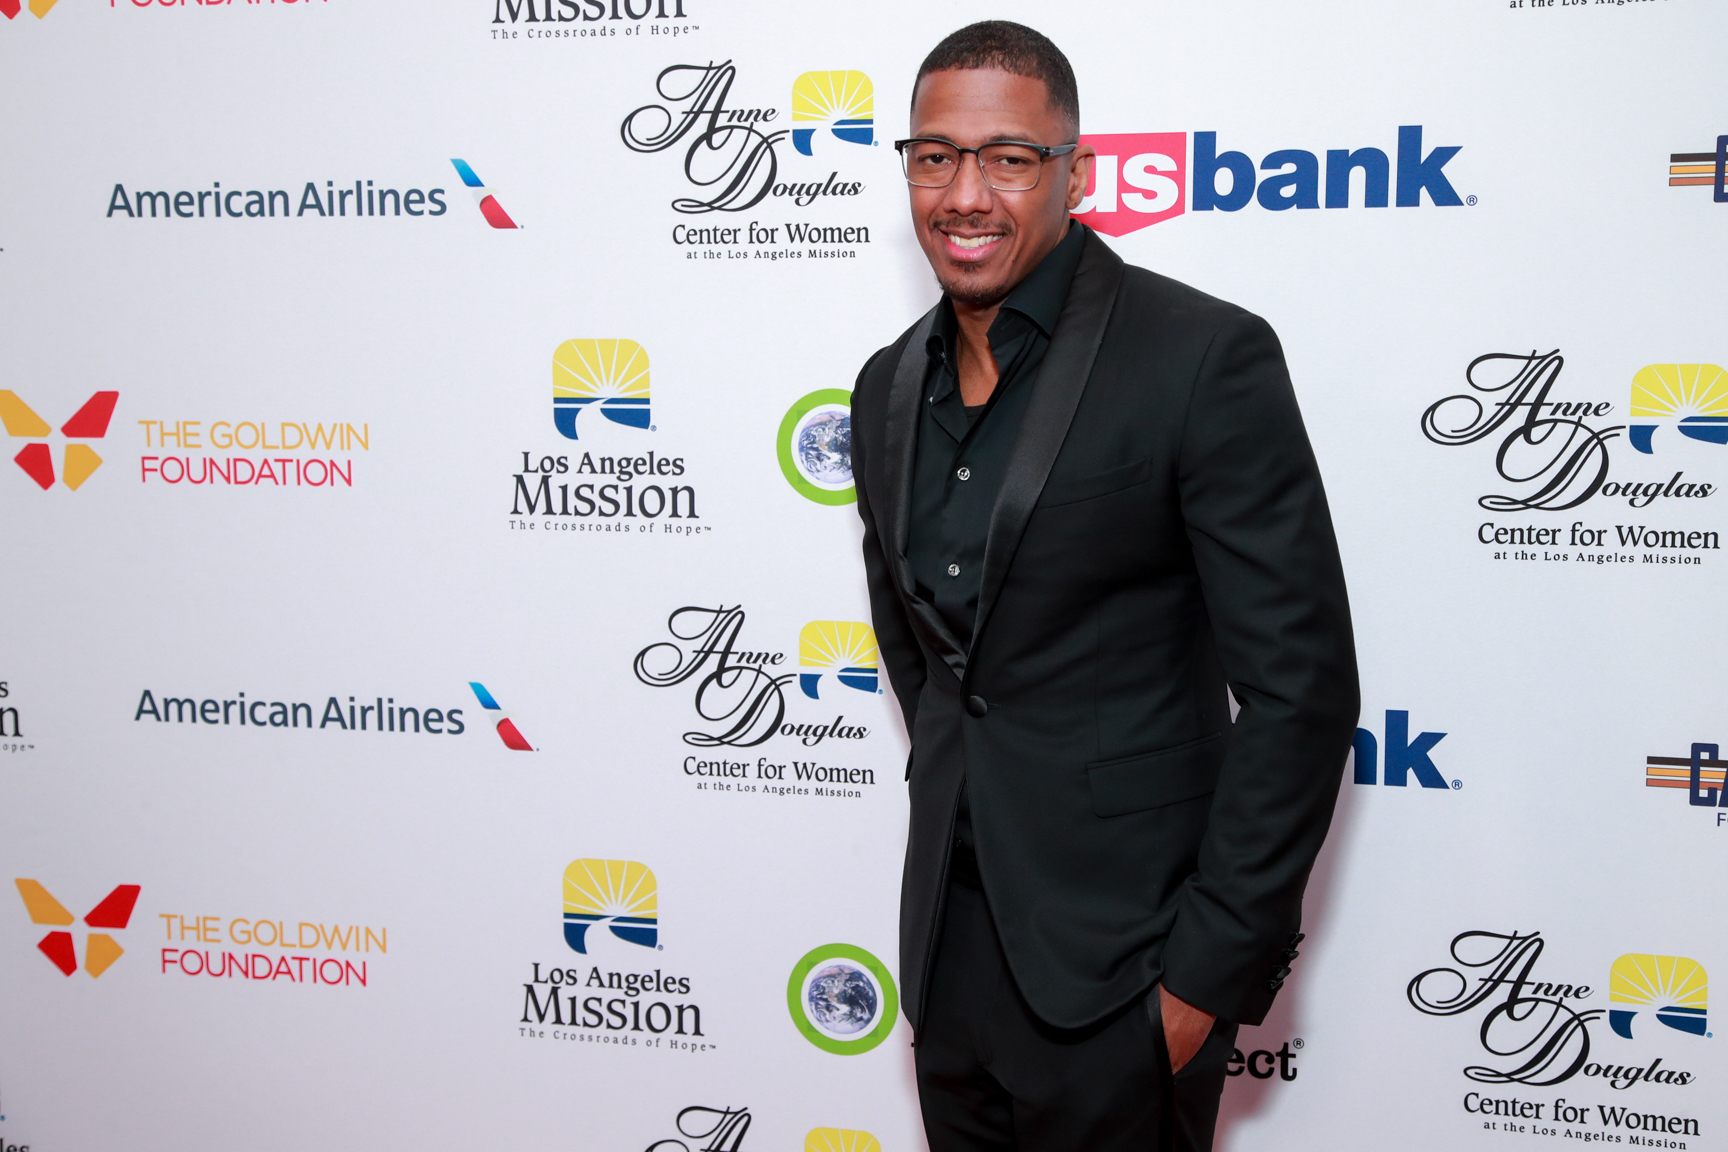 Nick Cannon attends The Los Angeles Mission Legacy of Vision Gala at The Beverly Hilton Hotel on October 24, 2019 in Beverly Hills, California. (Rich Fury/Getty Images)